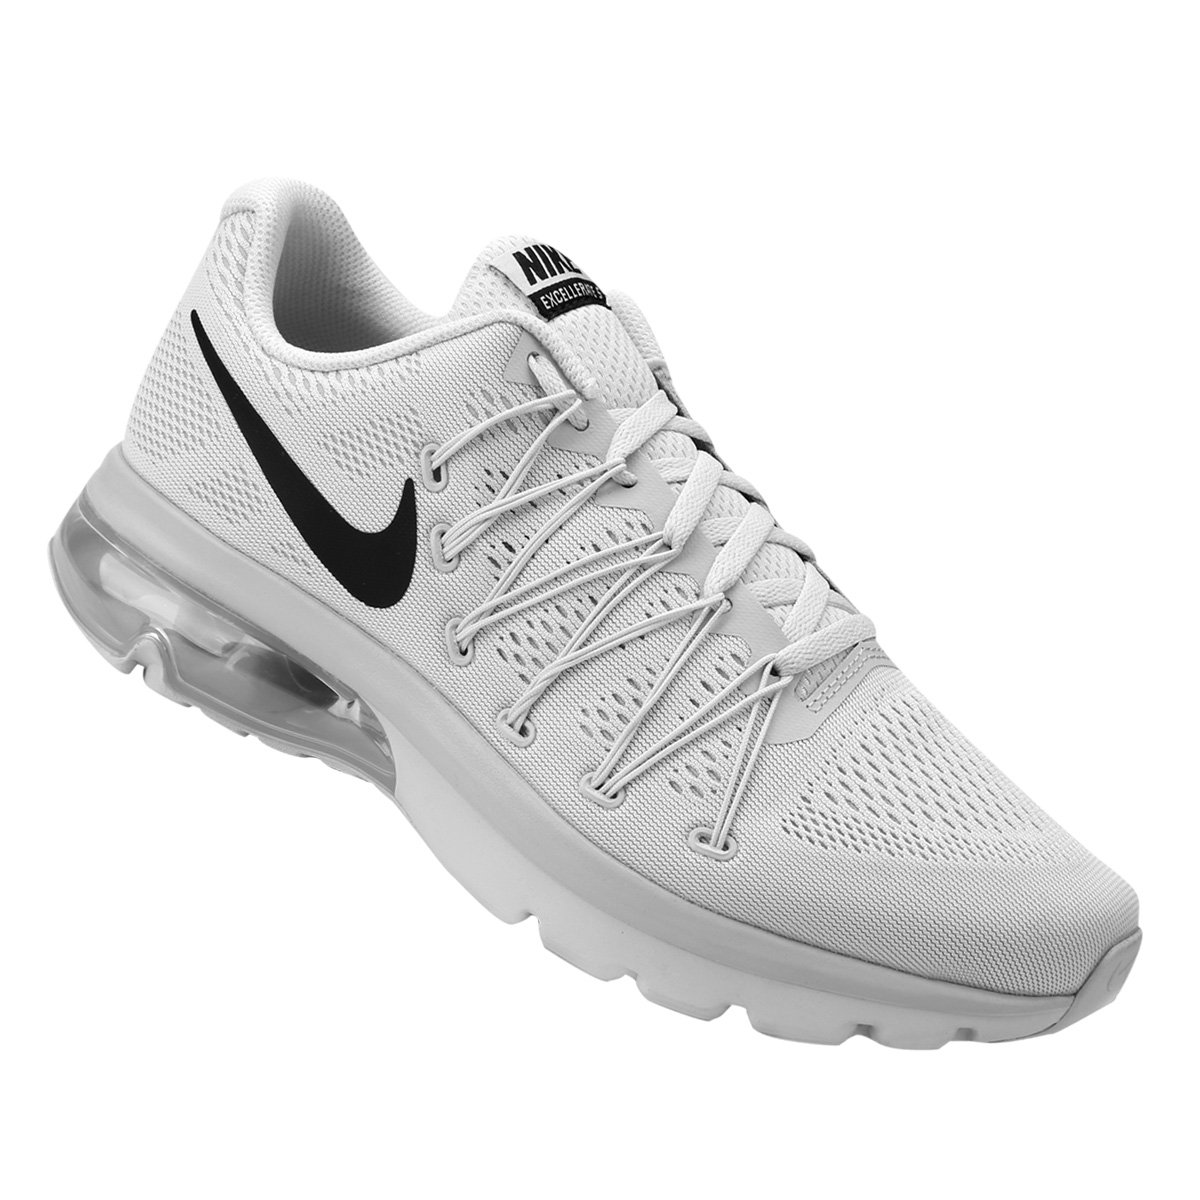 best service d7216 a8102 new style tênis nike air max excellerate 5 masculino brancopreto cf596 4e957